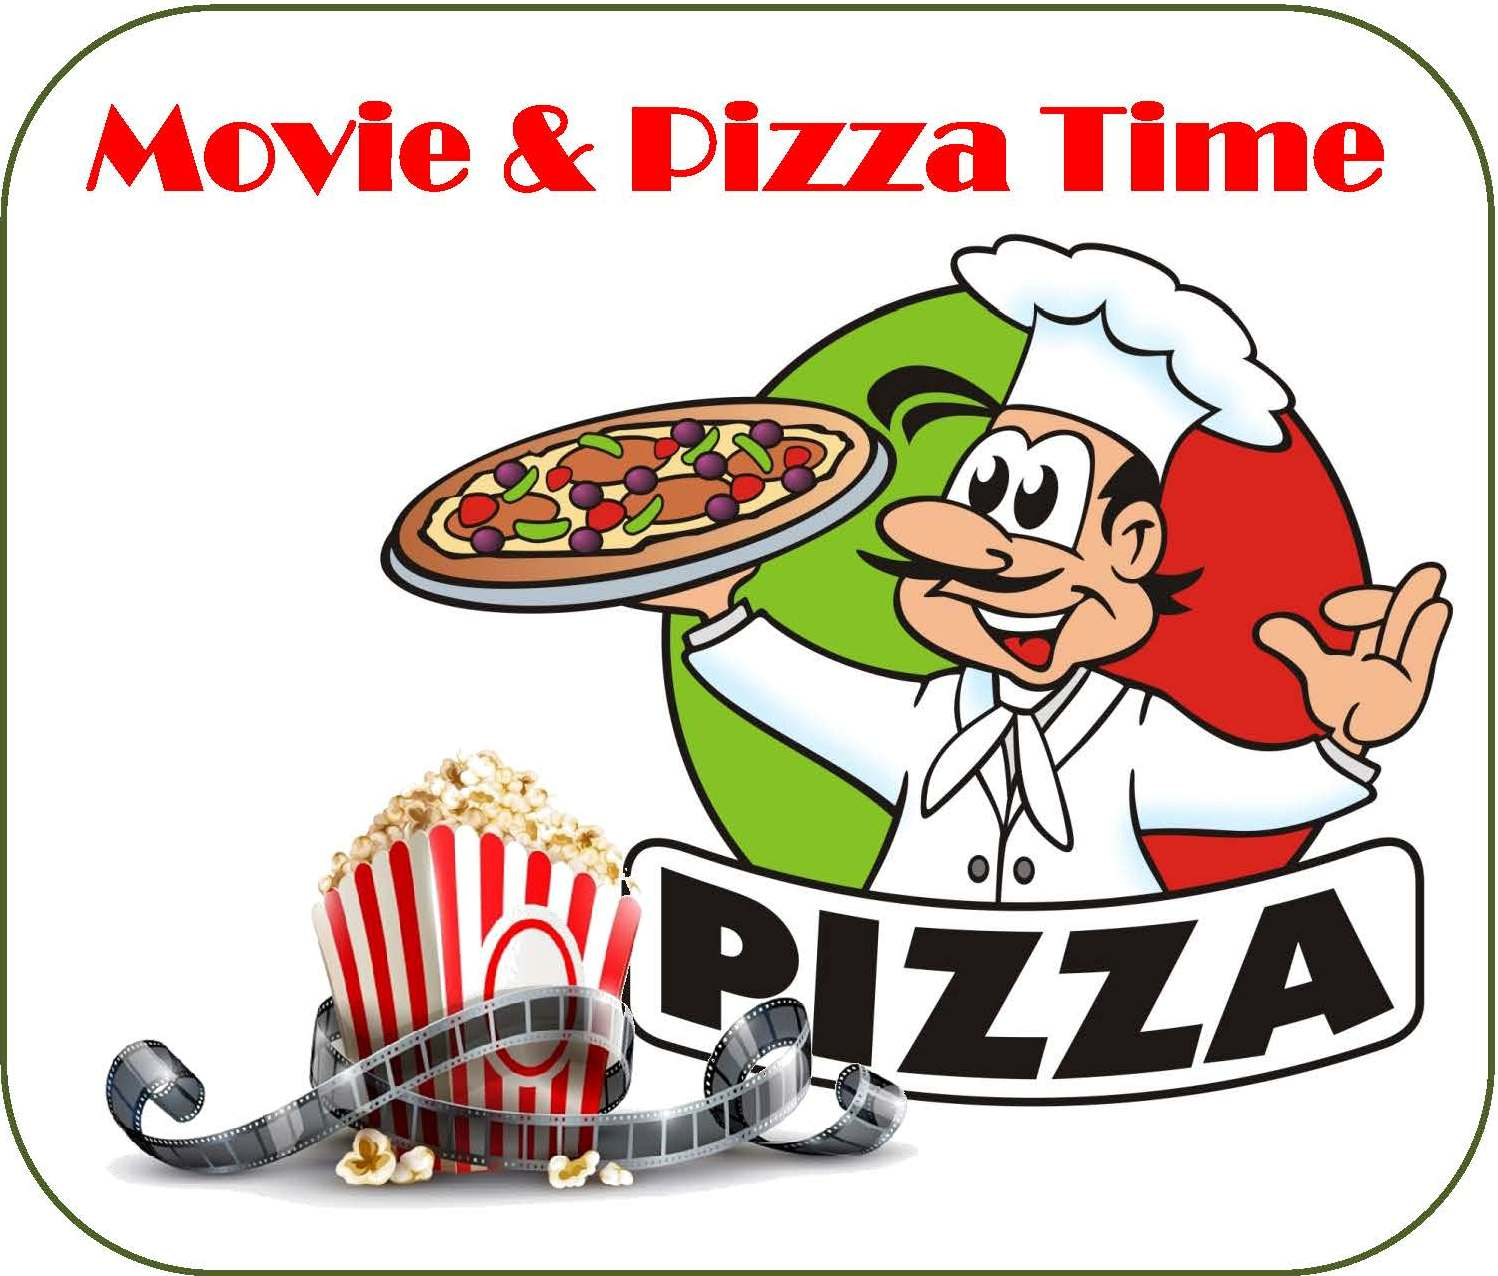 Movie + Pizza image.jpg